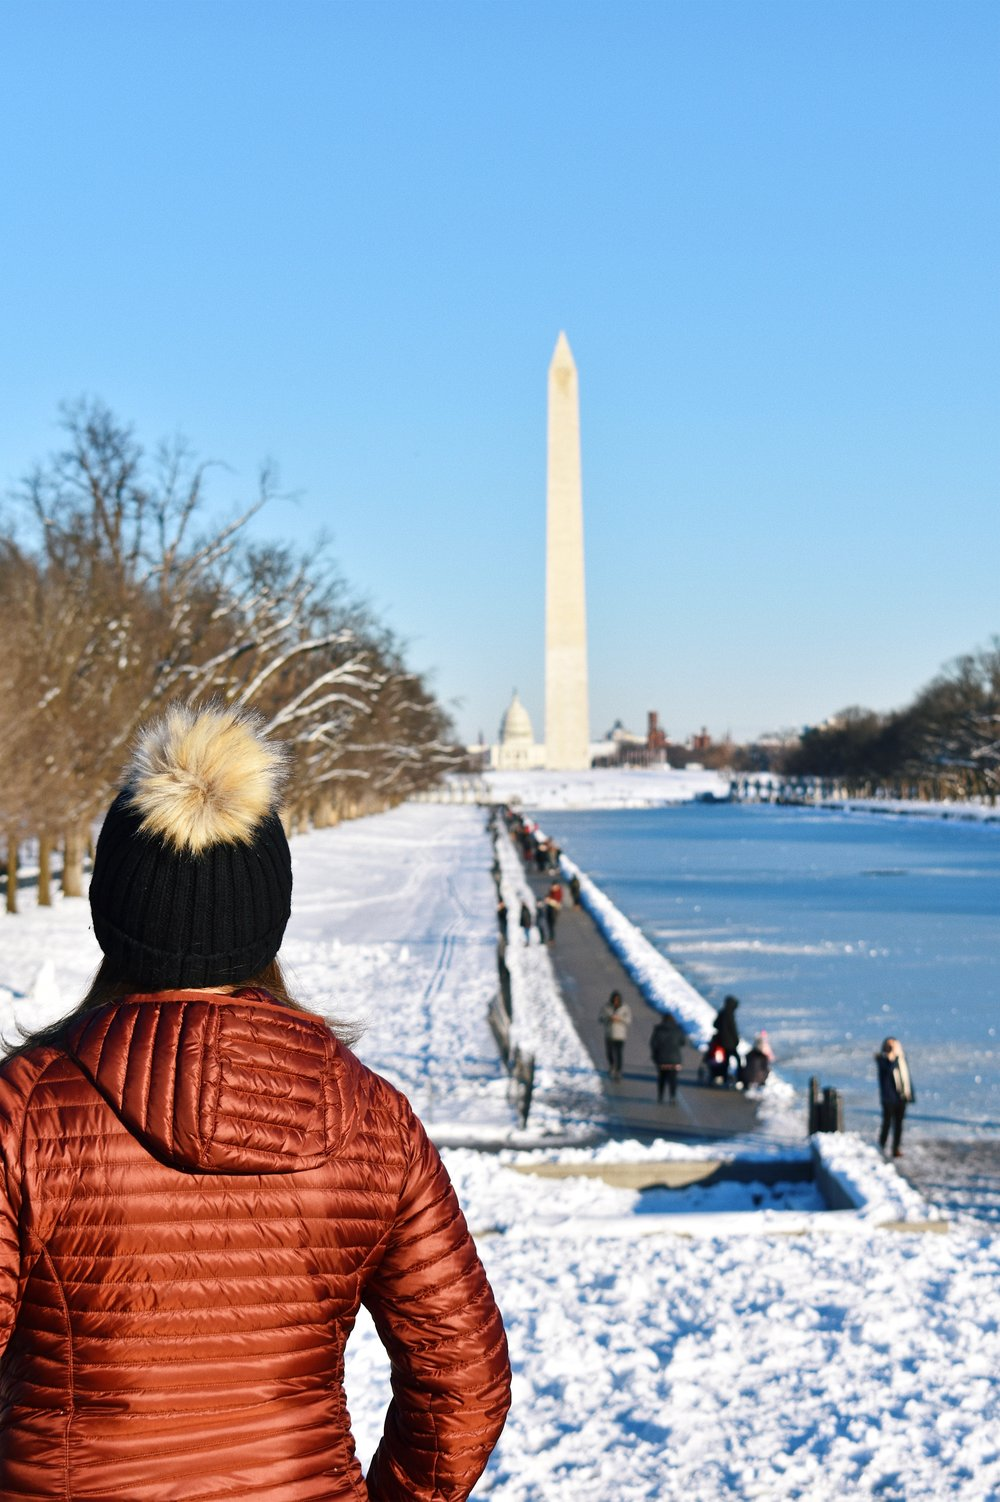 Snow Day in Washington D.C.